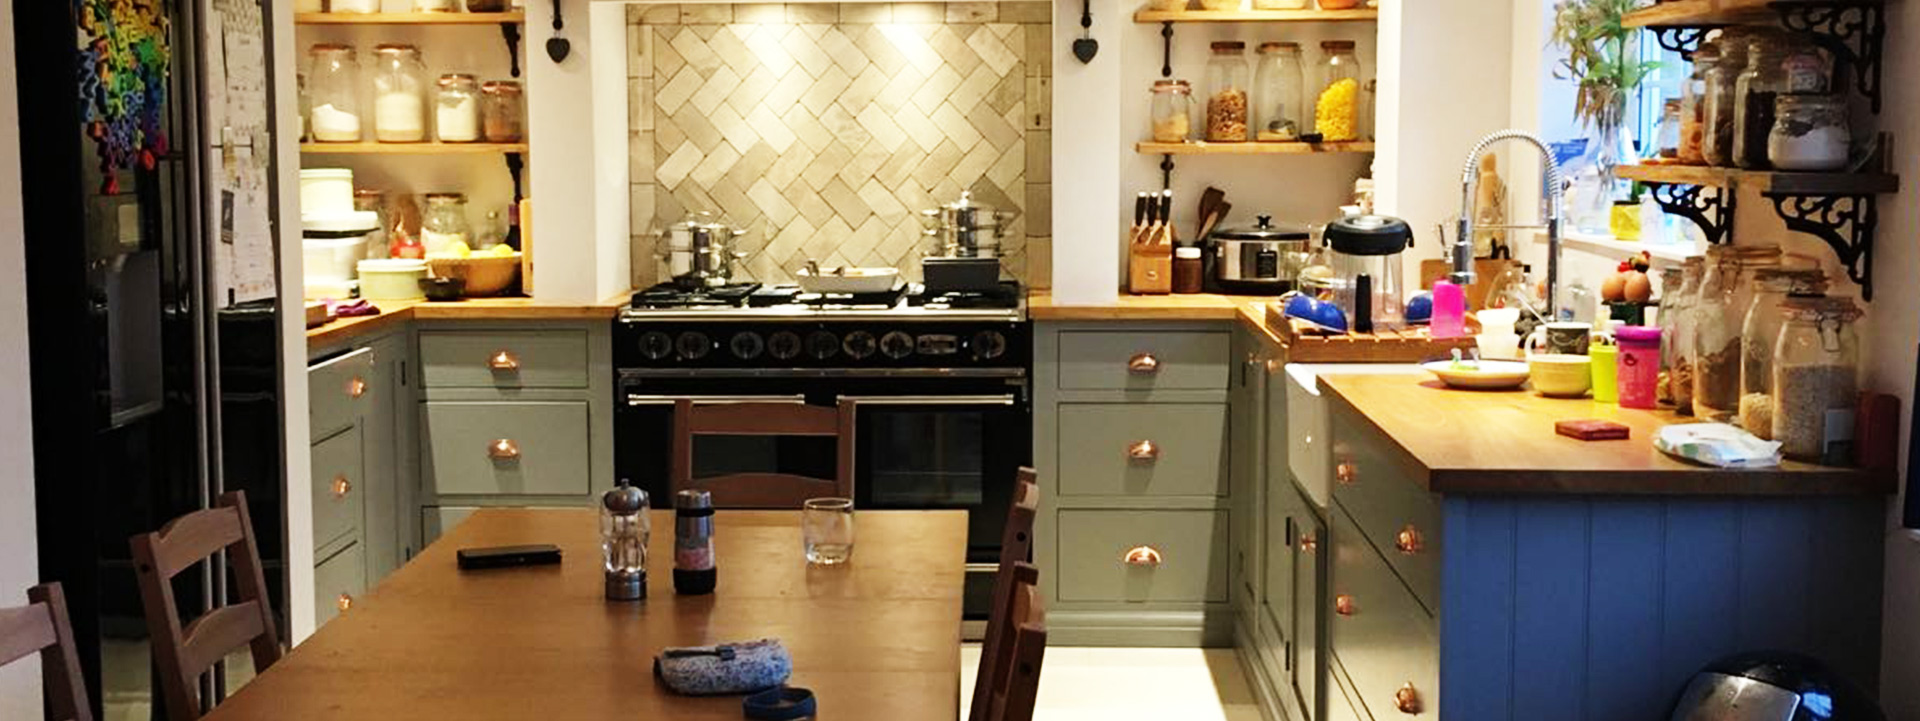 Fine kitchens built in Bedford